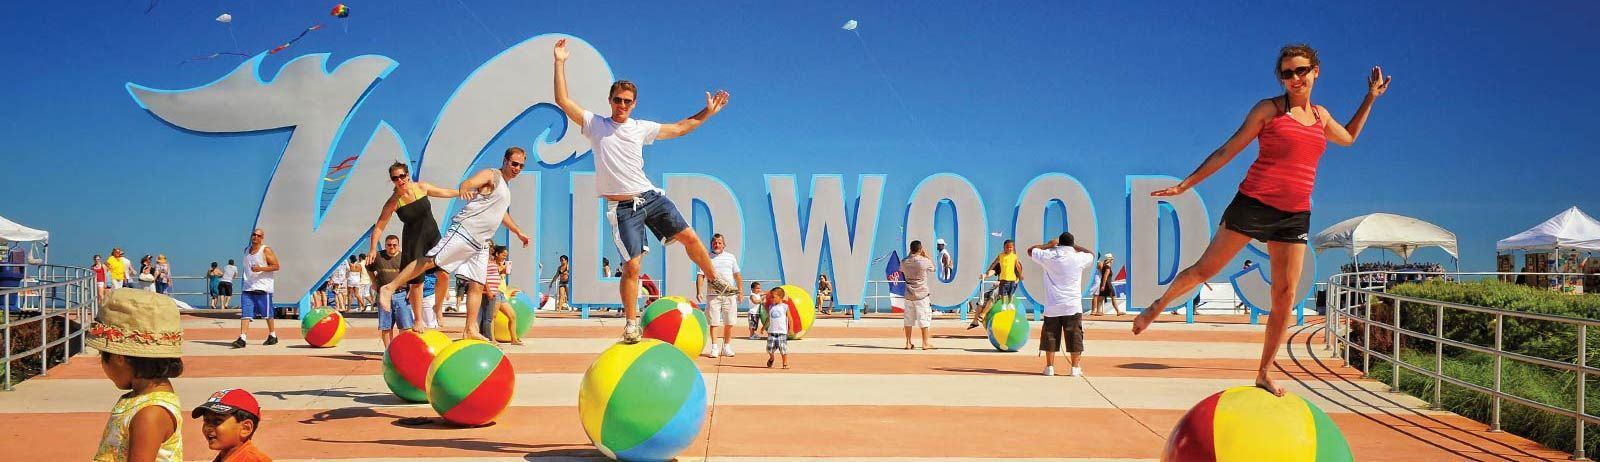 wildwood-beach-ball.jpg